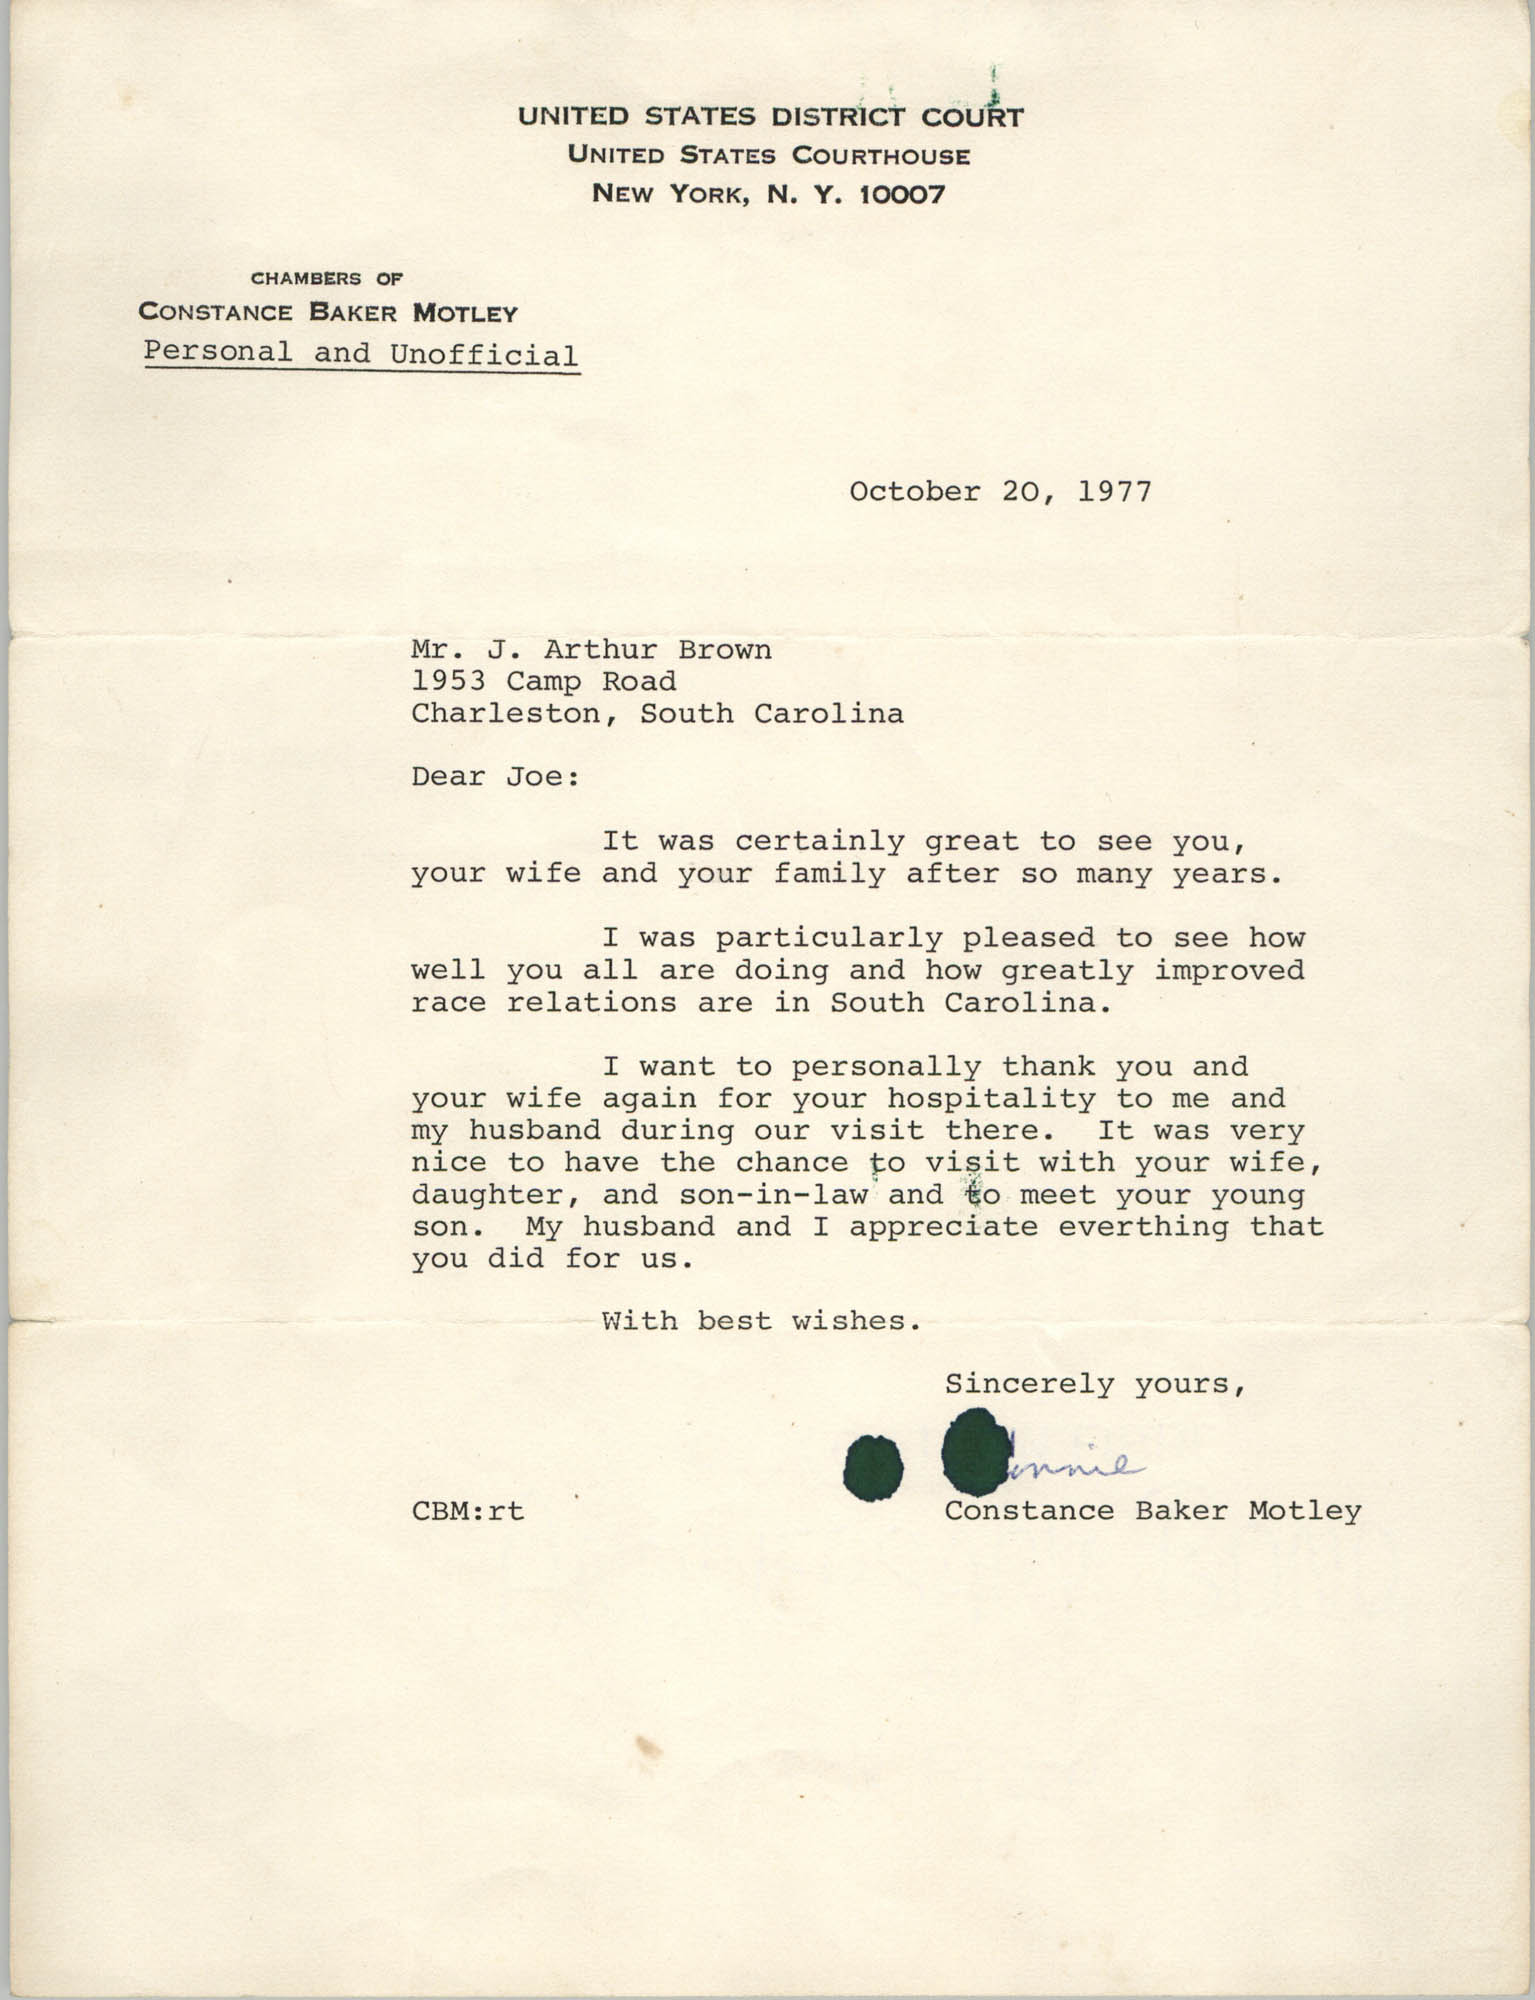 Letter from Constance Baker Motley to J. Arthur Brown, October 20, 1977